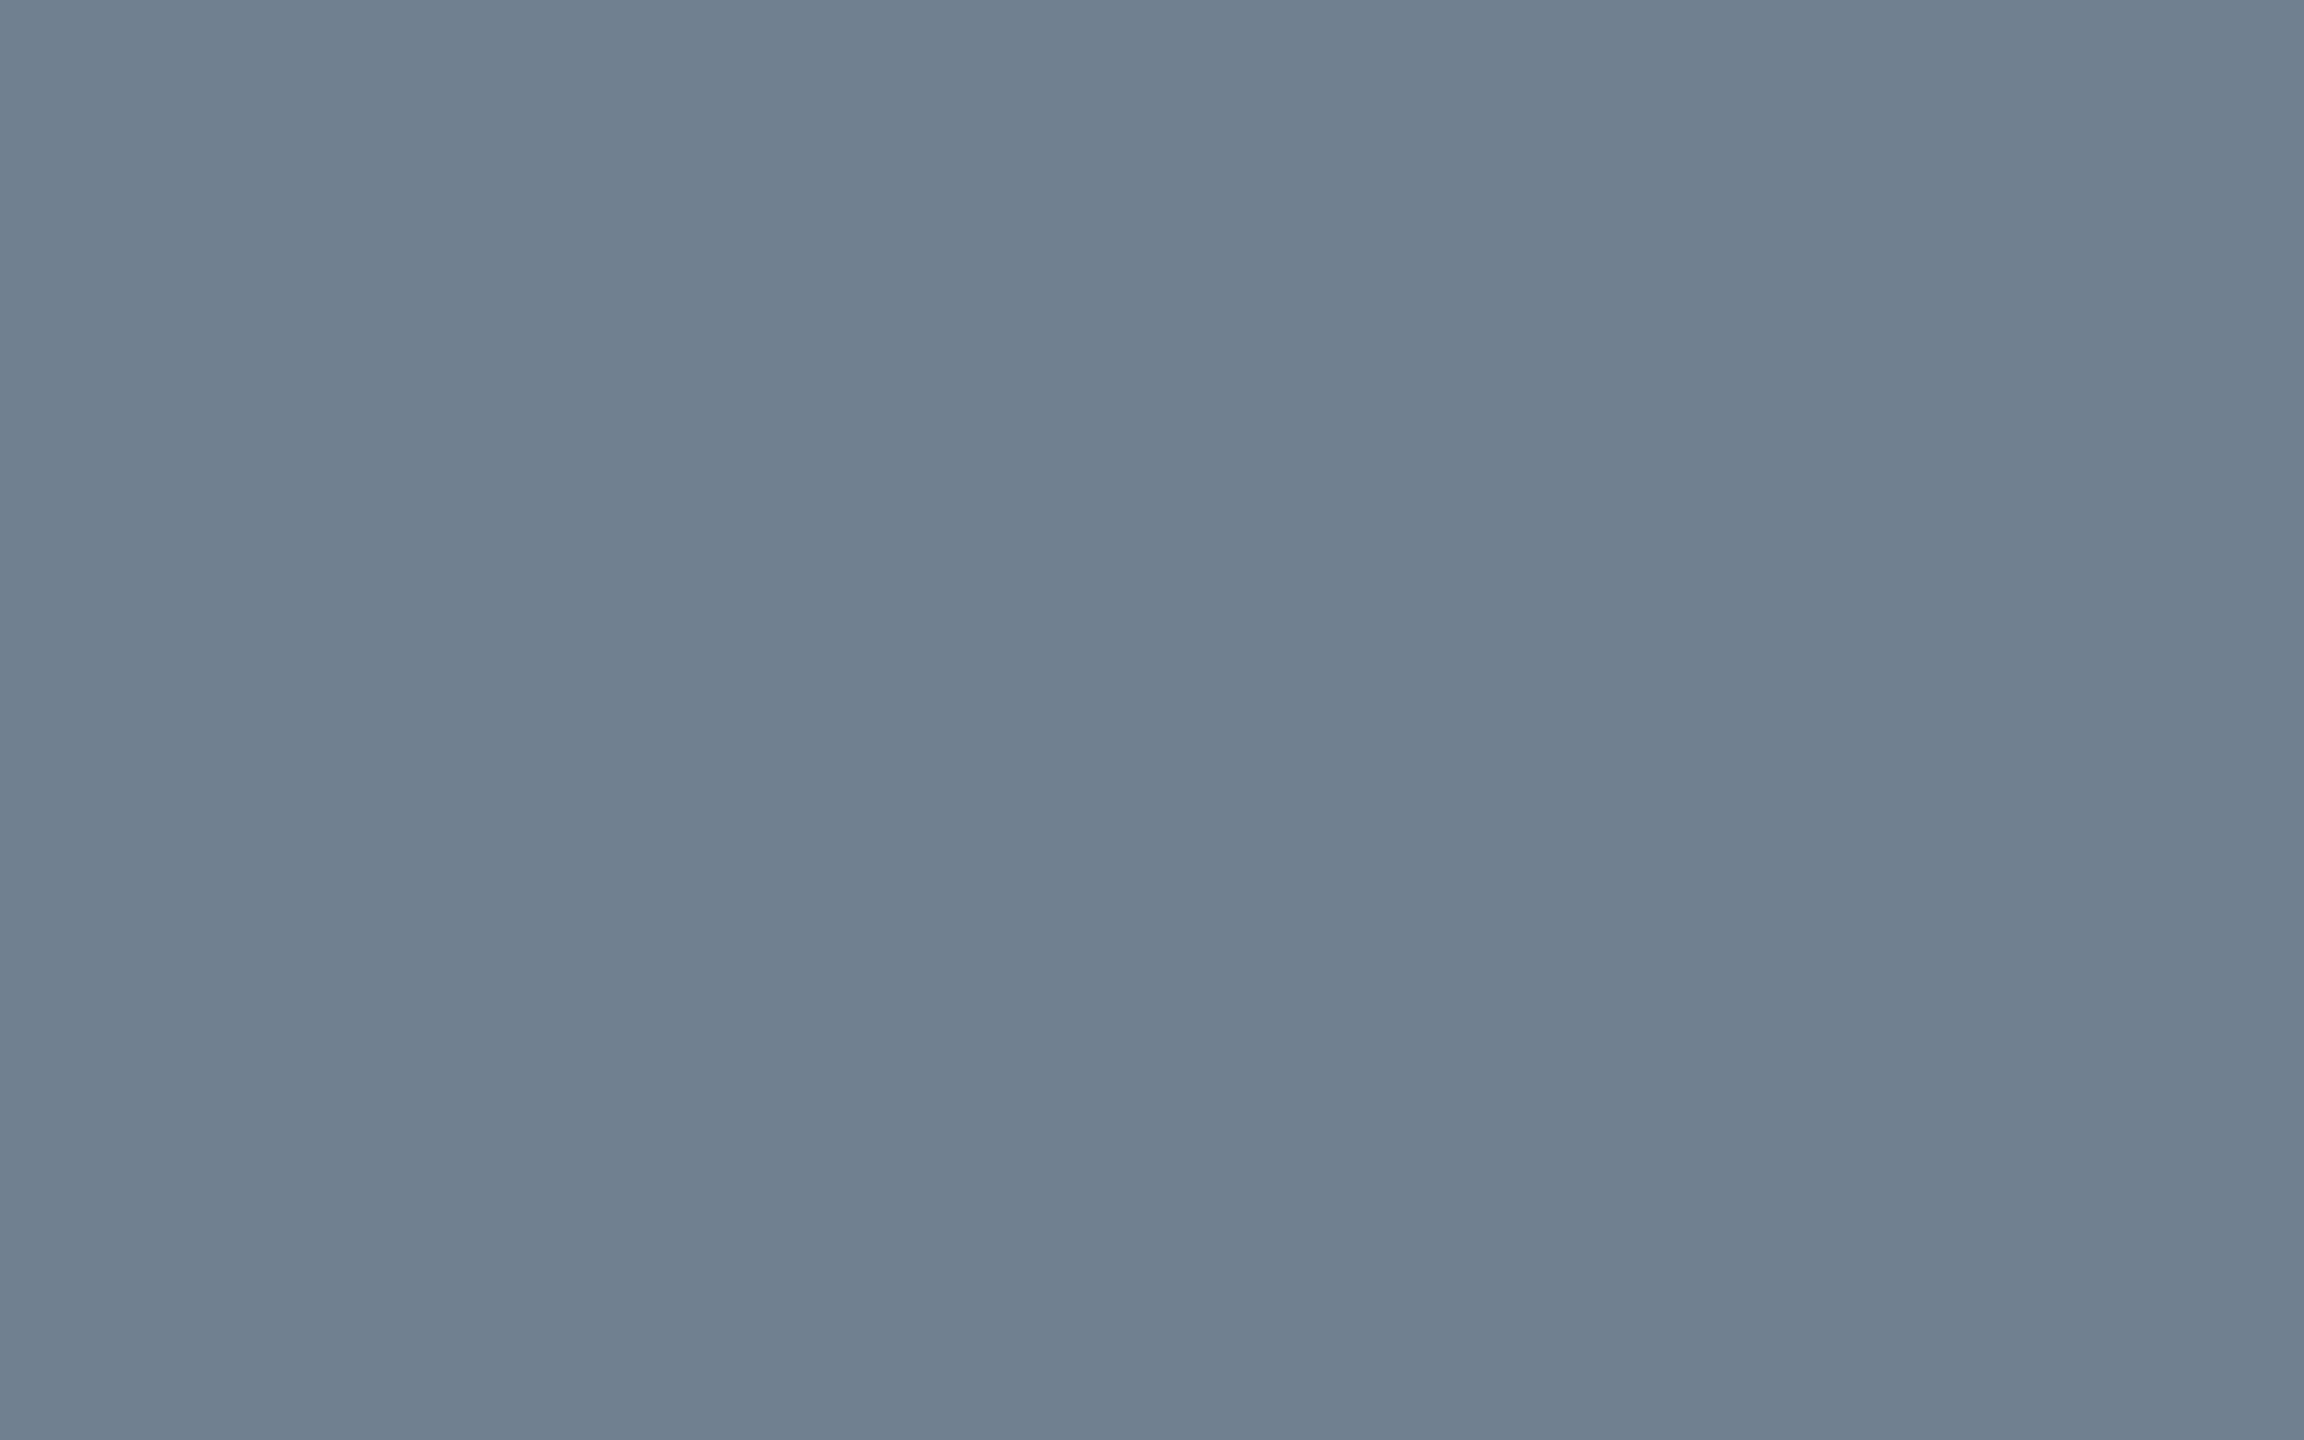 2304x1440 Slate Gray Solid Color Background